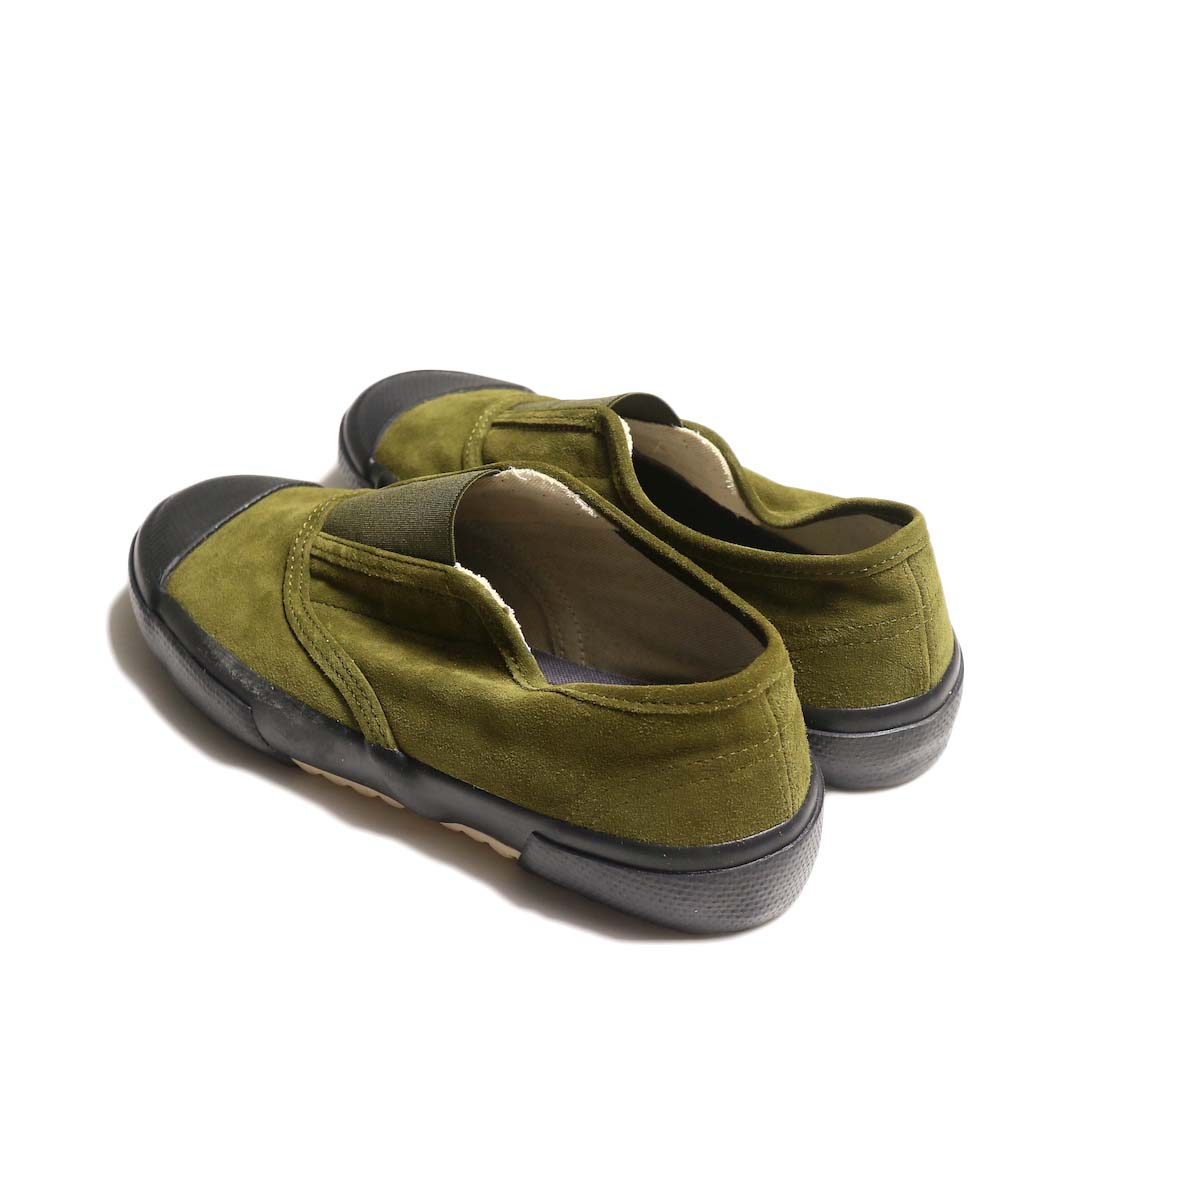 REPRODUCTION OF FOUND / ITALIAN MILITARY TRAINER (Olive Suede / Black Sole)背面